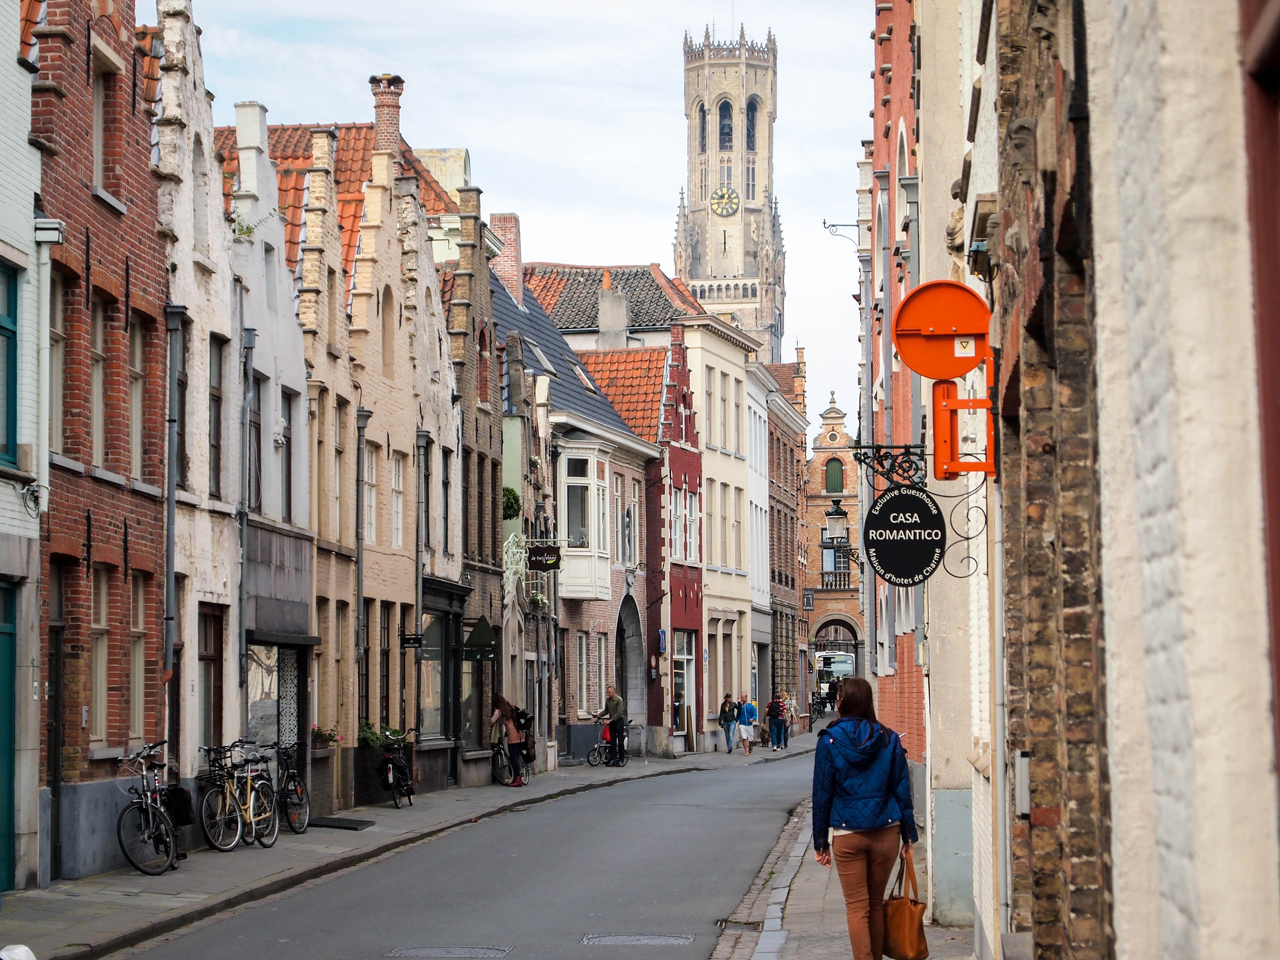 Wandering through the medieval streets of Bruges